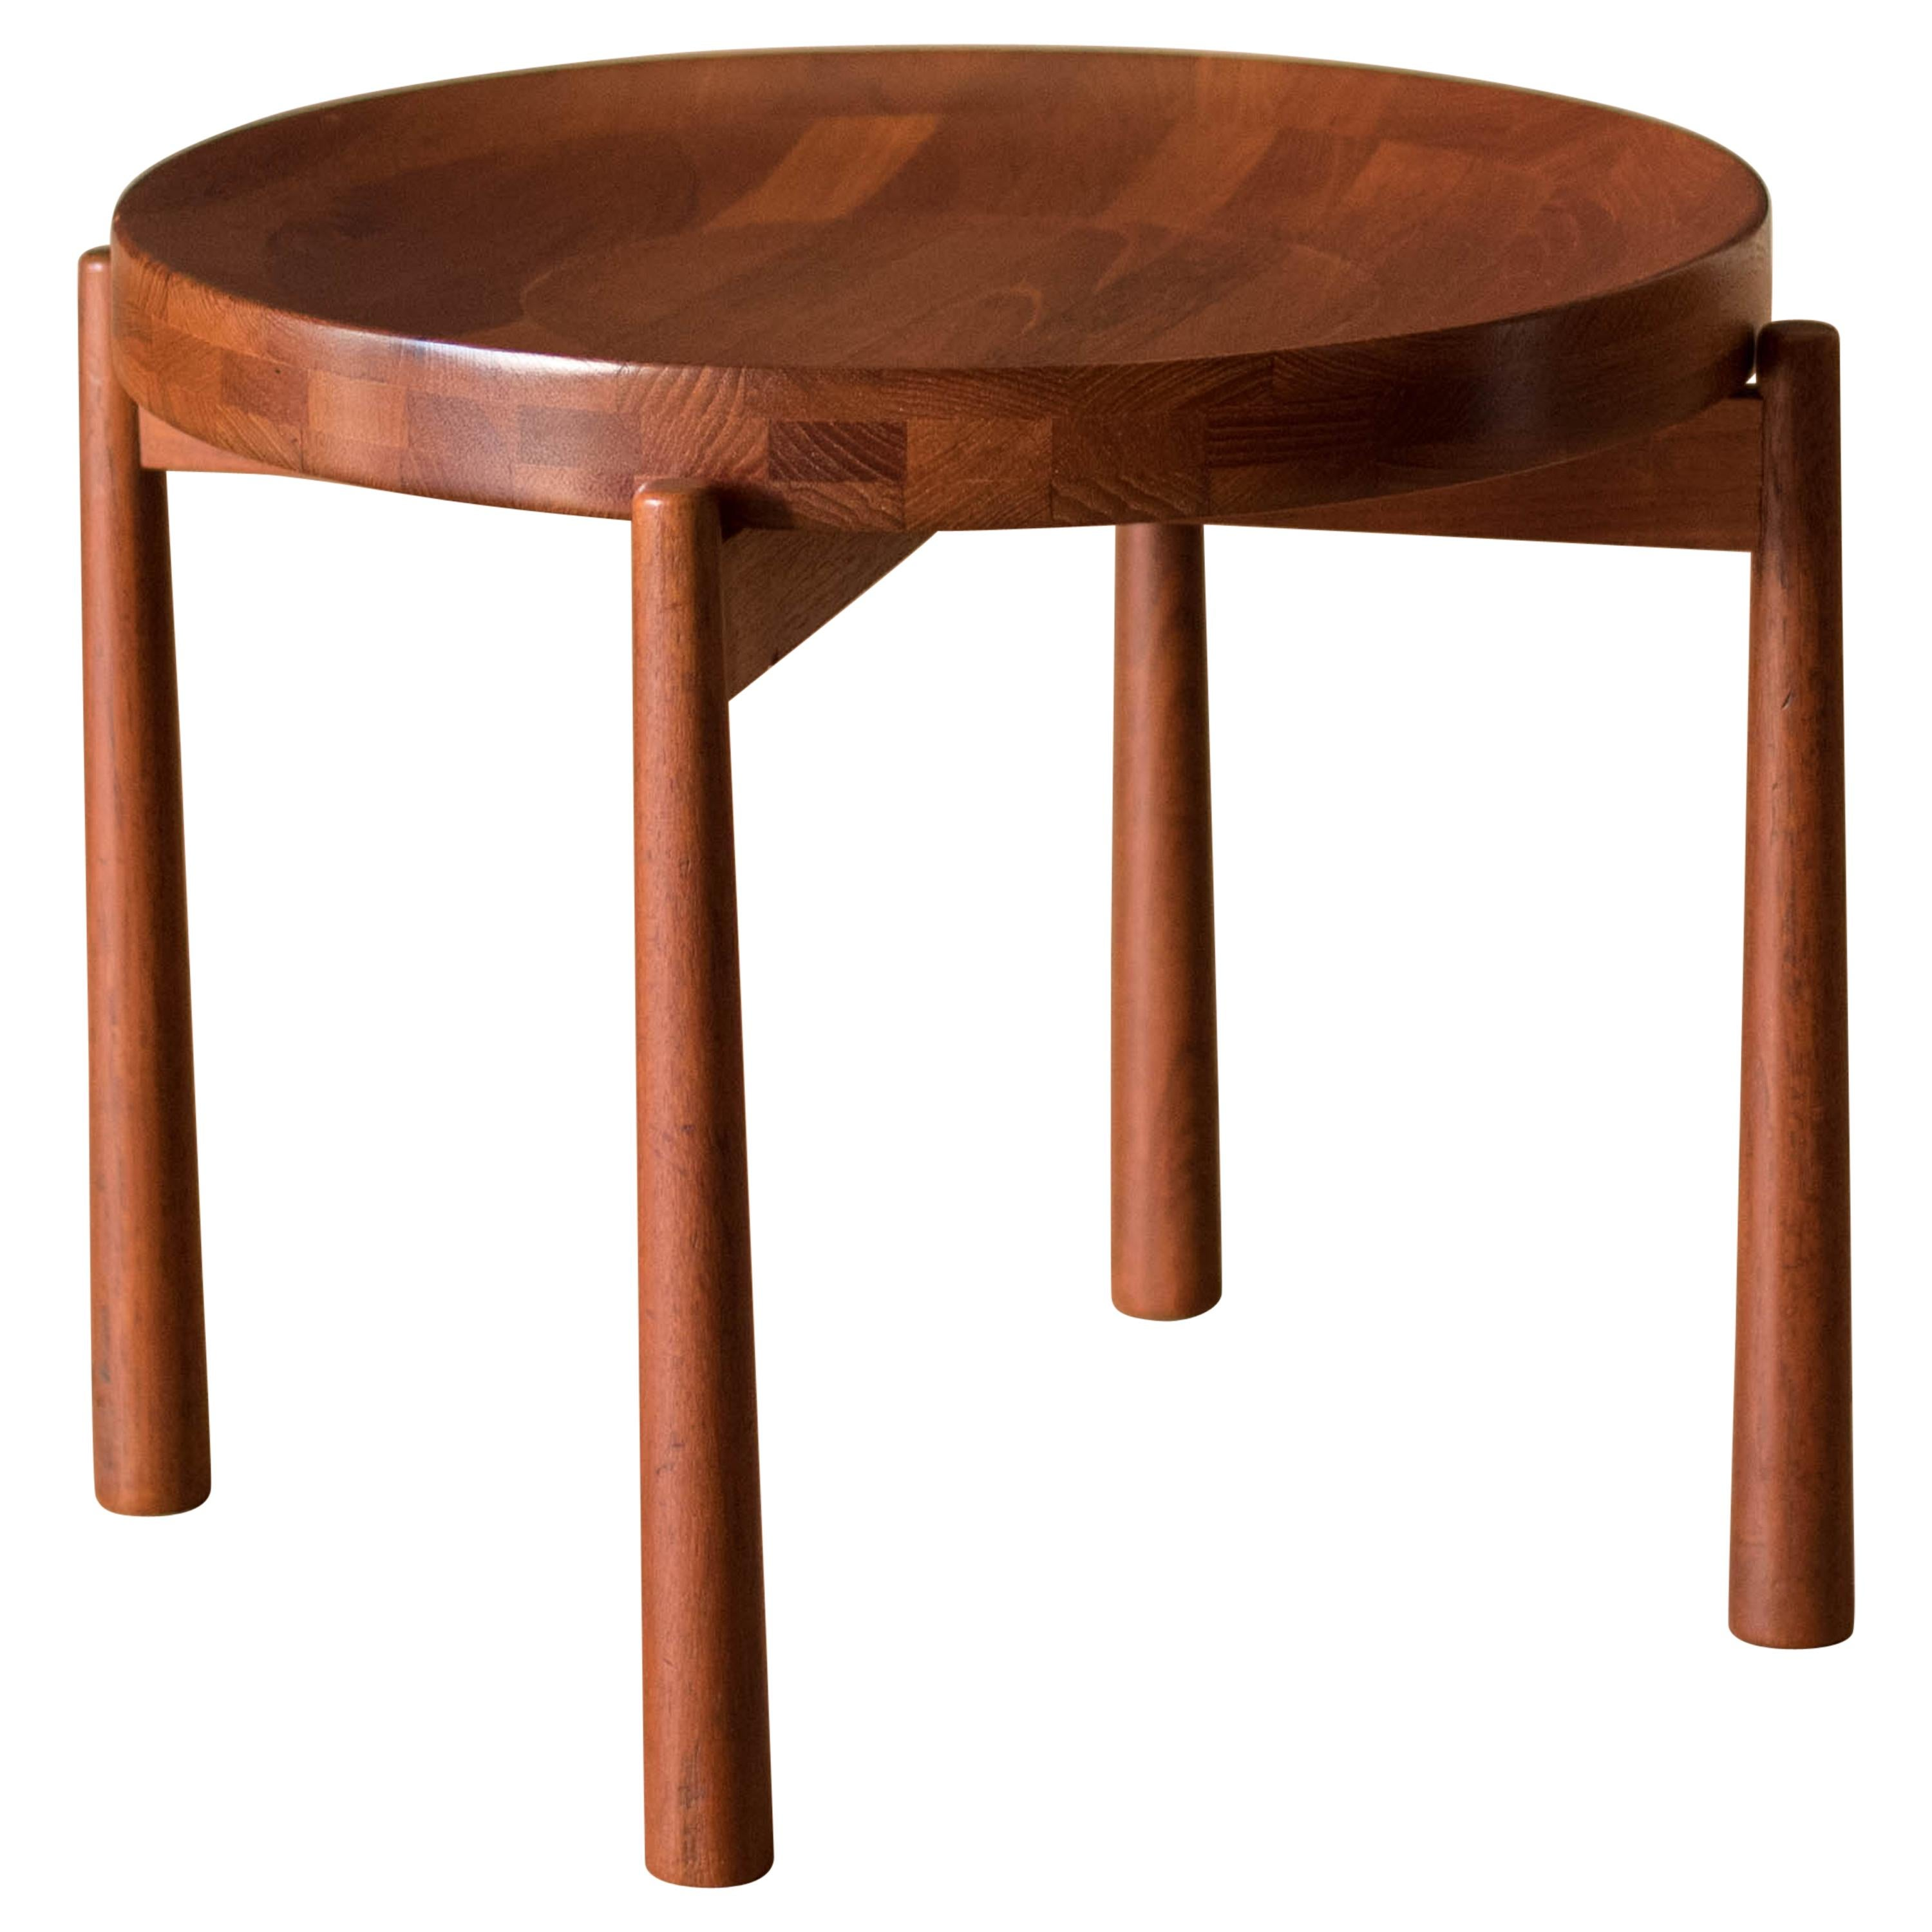 Vintage Teak Reversible Tray End Table by Dux